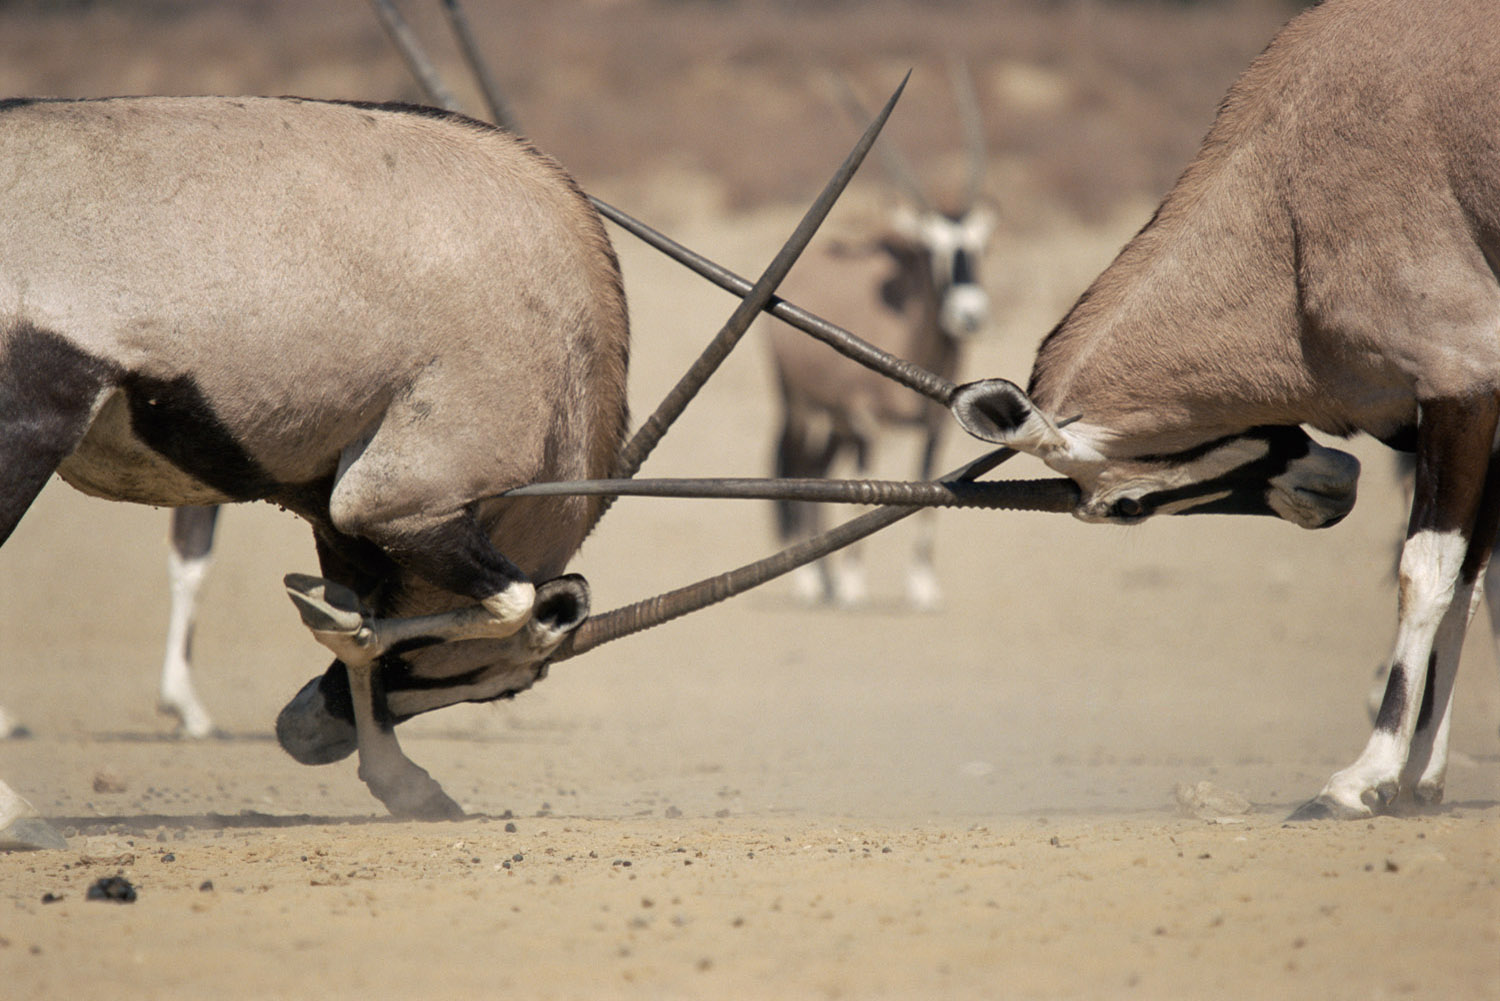 Gemsbok sparring, Kgalagadi Transfrontier Park, South Africa